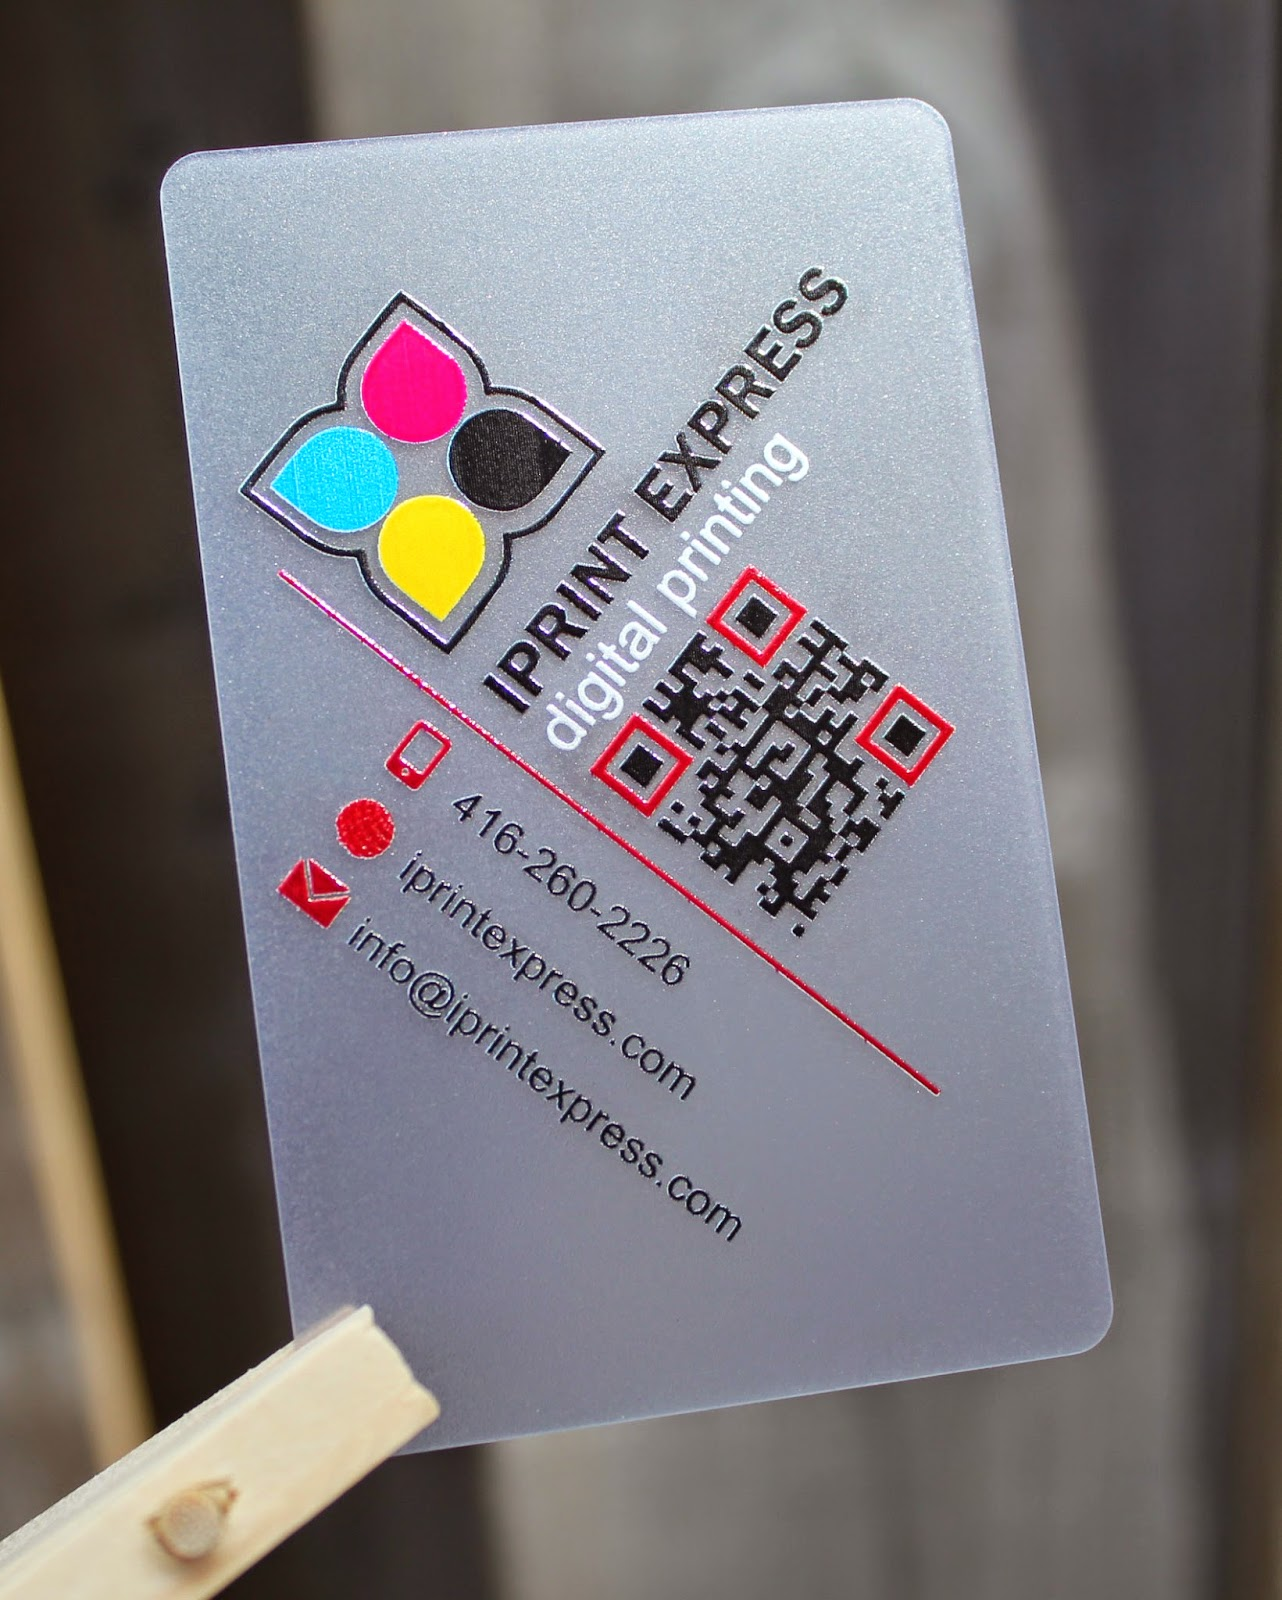 Business cards on wood iprint express toronto digital printing clear frosted plastic cards reheart Choice Image